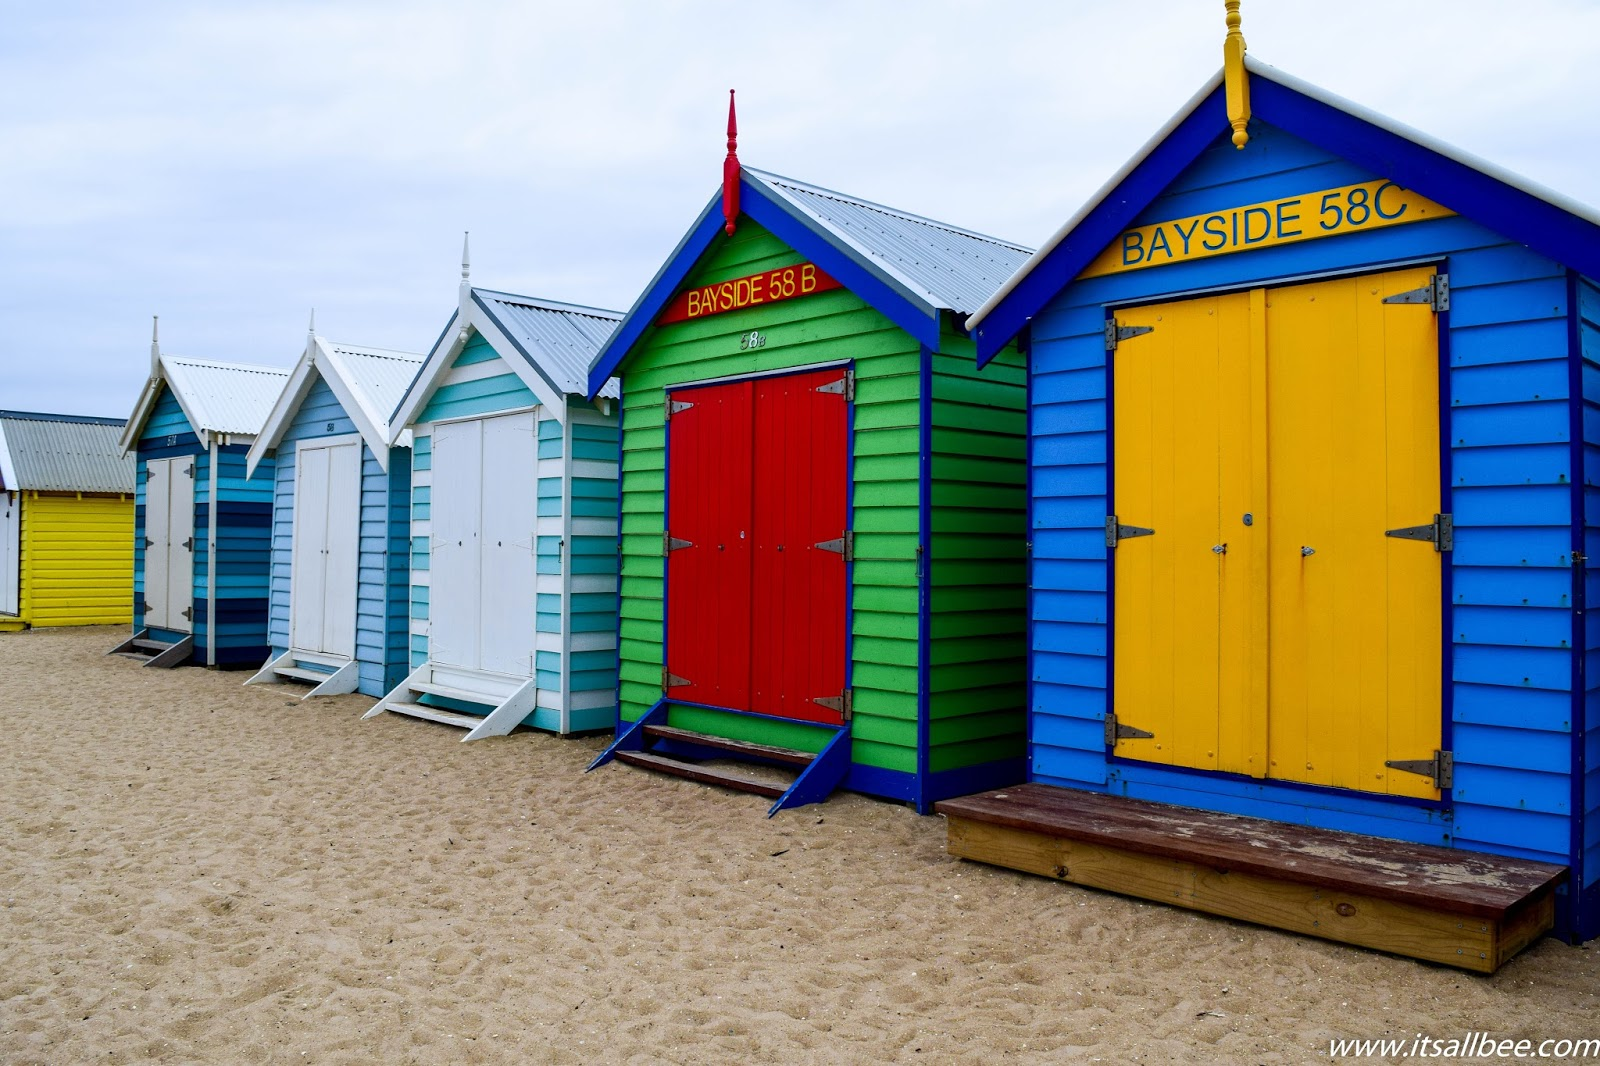 How To Get To Brighton Beach Melbourne's Bathing Boxes Beach By Train #itsallbee #australia #traveltips #beaches #ocean #vacation #takemethere #beachlife